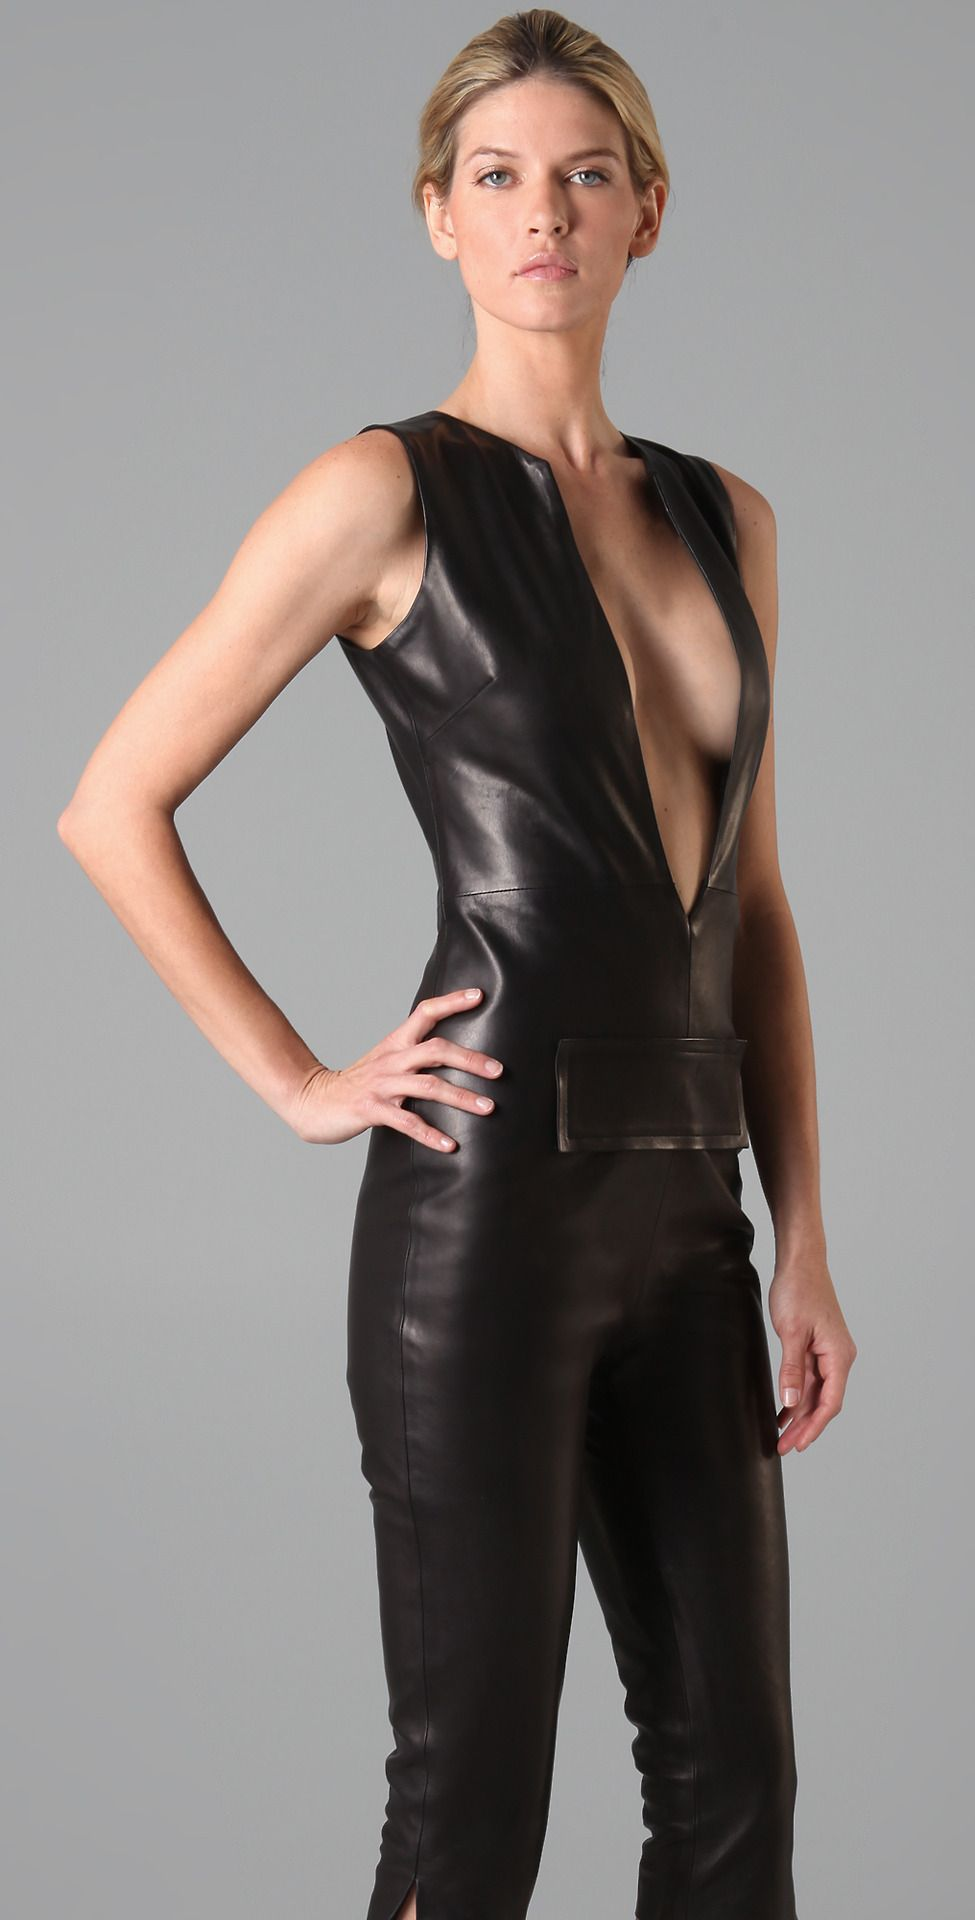 Only Leather   Spy Girls   hitwomen   Leather, Leather catsuit und ... 8103886e48